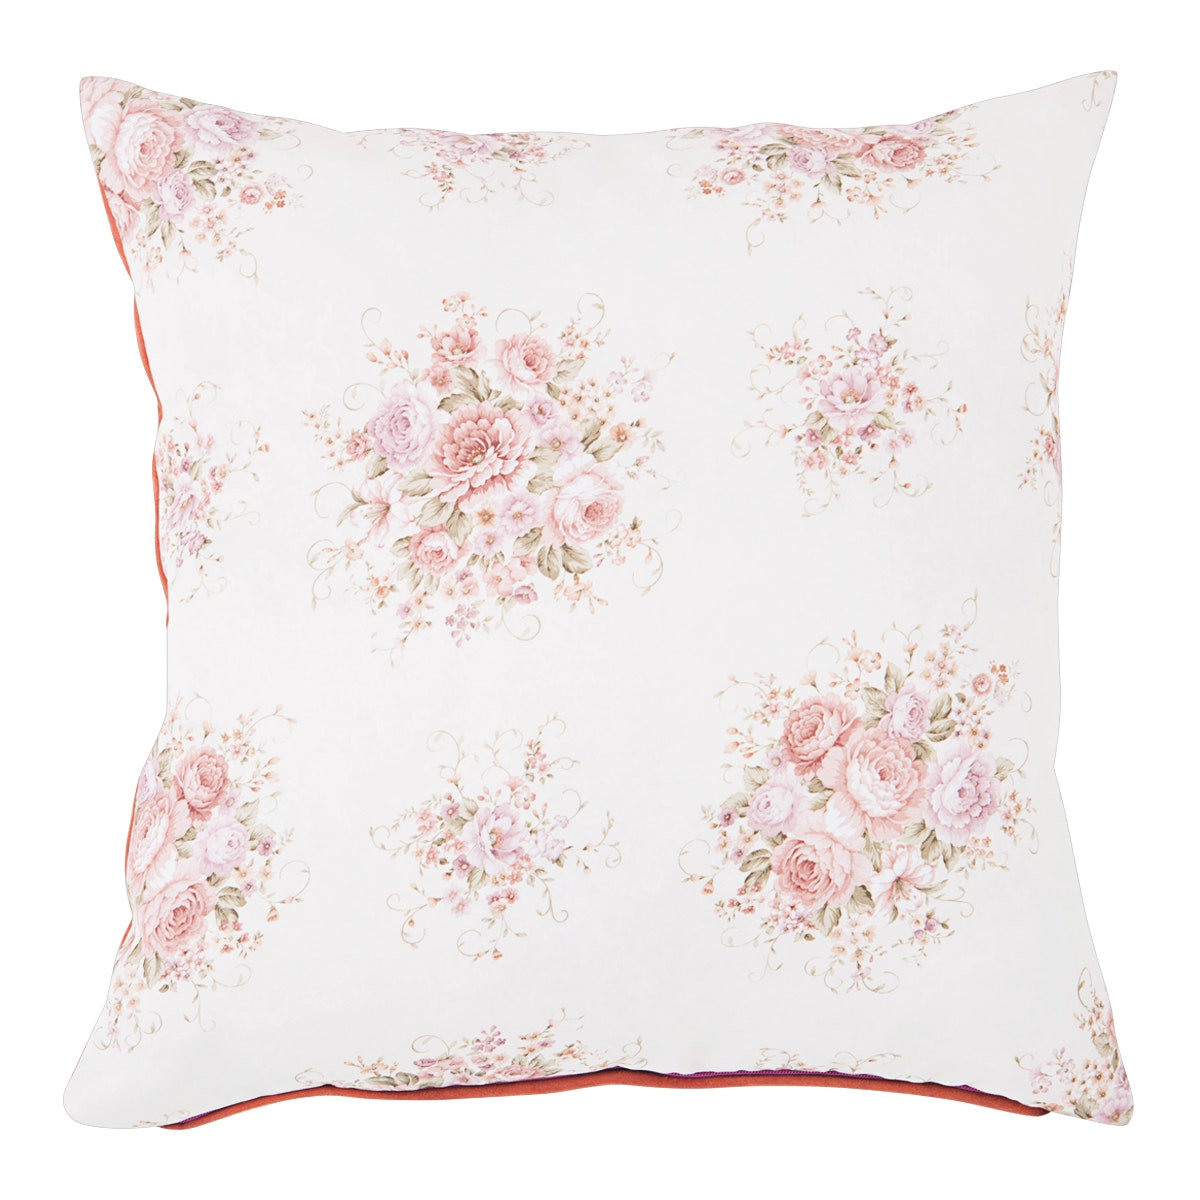 Maiika I Flower Cover Cushion 45x45cm